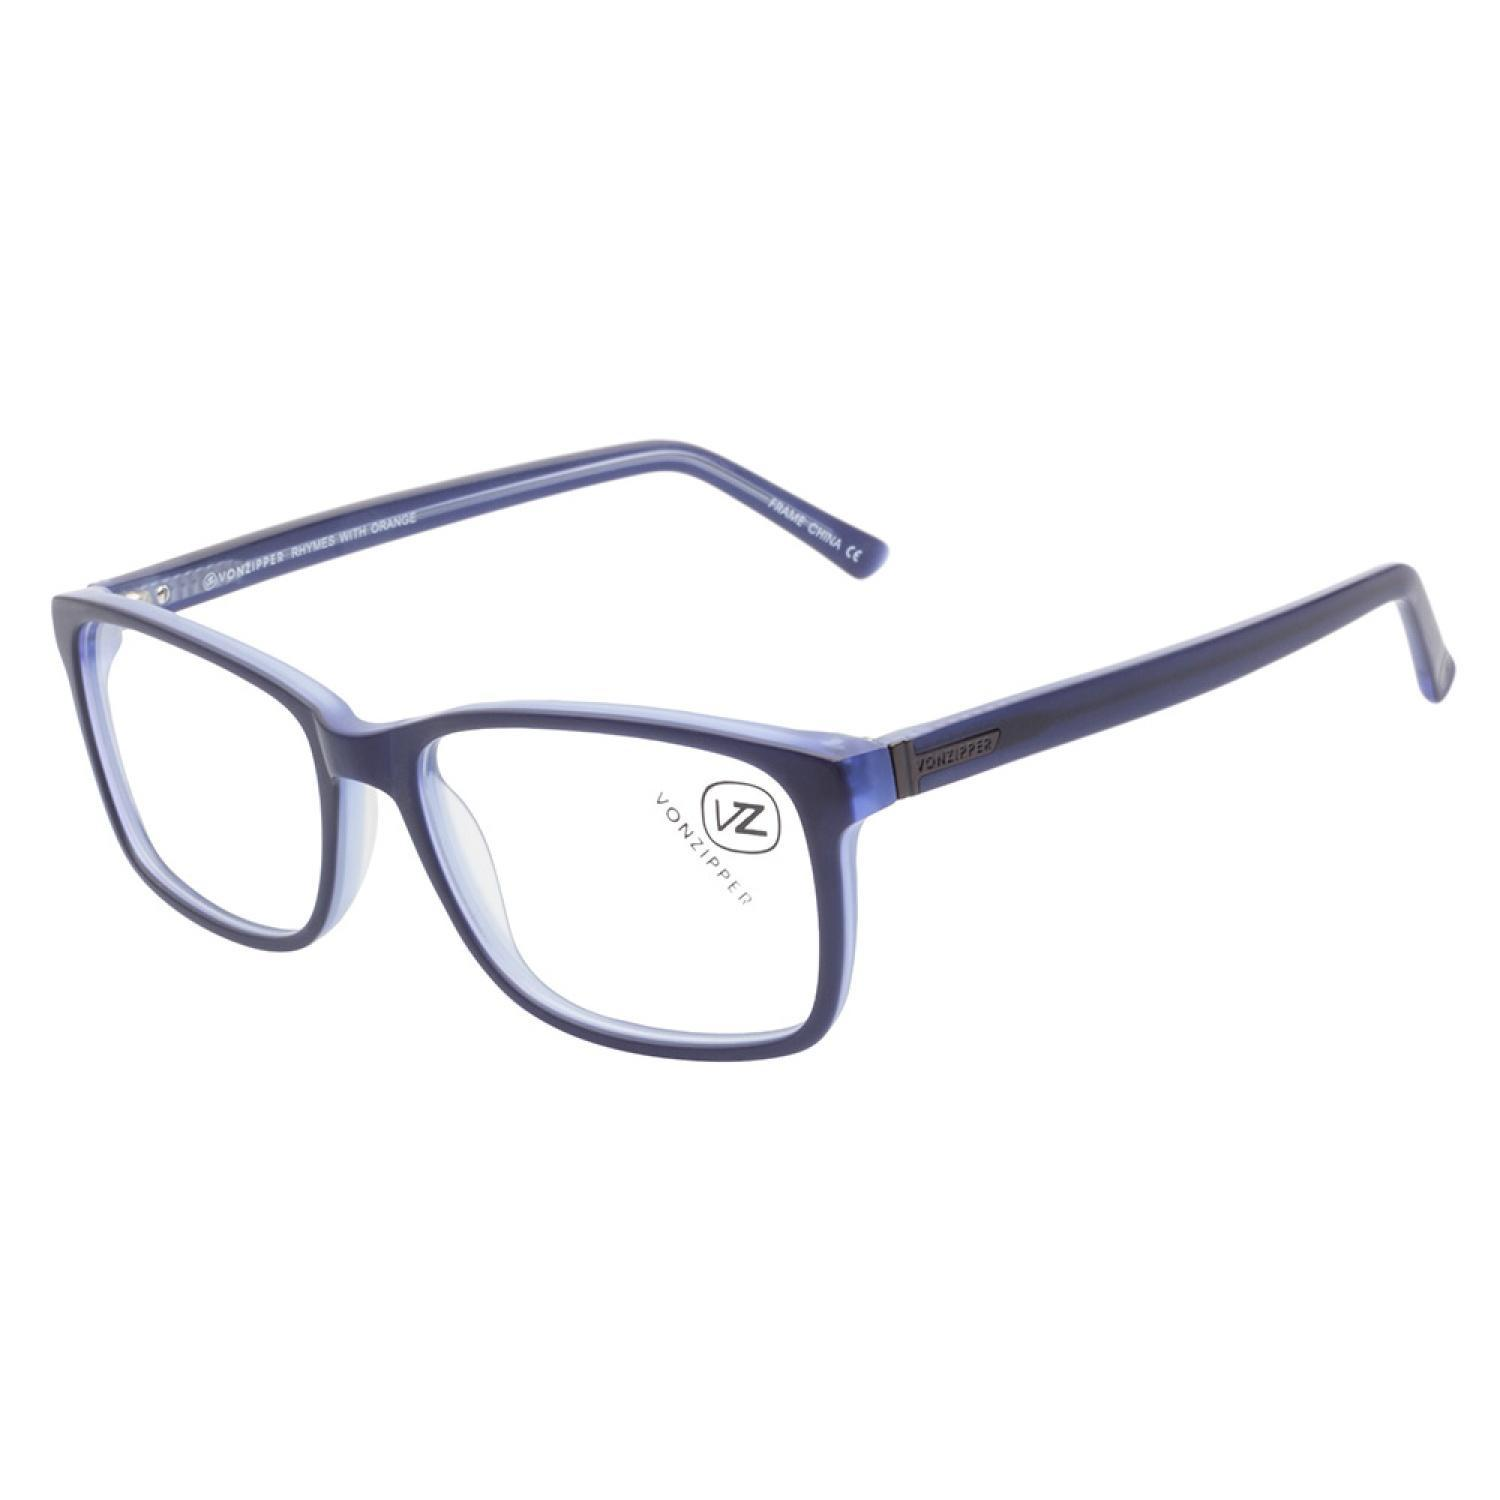 54440e334a Shop Vonzipper Rhymes With Orange NAV Navy Smoke Prescription Eyeglasses -  Free Shipping Today - Overstock.com - 9402114